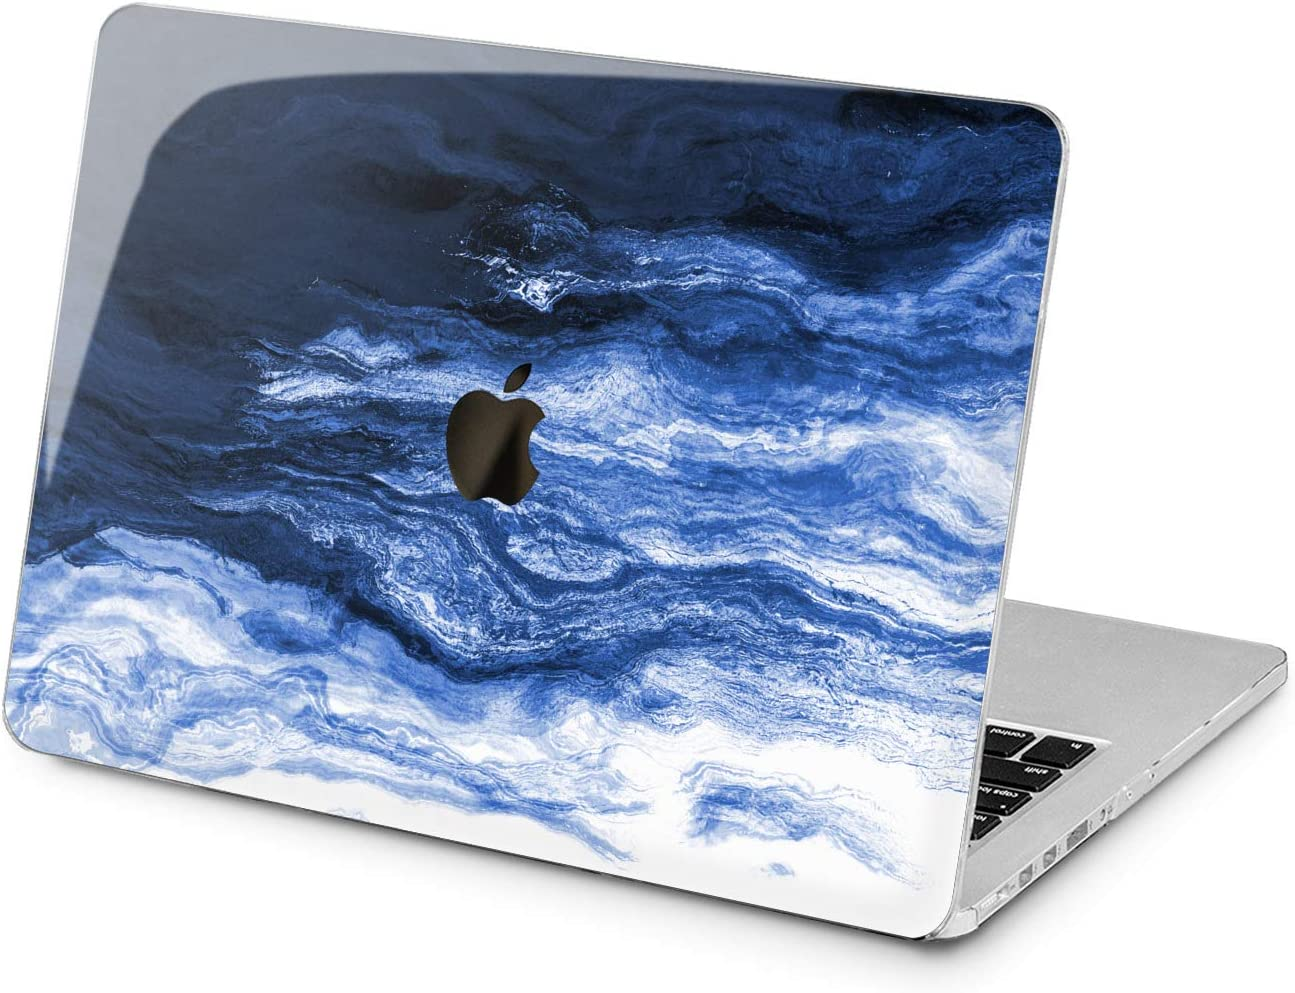 "Cavka Hard Shell Case for Apple MacBook Pro 13"" 2019 15"" 2018 Air 13"" 2020 Retina 2015 Mac 11"" Mac 12"" Art Paint Laptop Creative Indigo Print New Cover Aesthetic Design Protective Waves Plastic Blue"